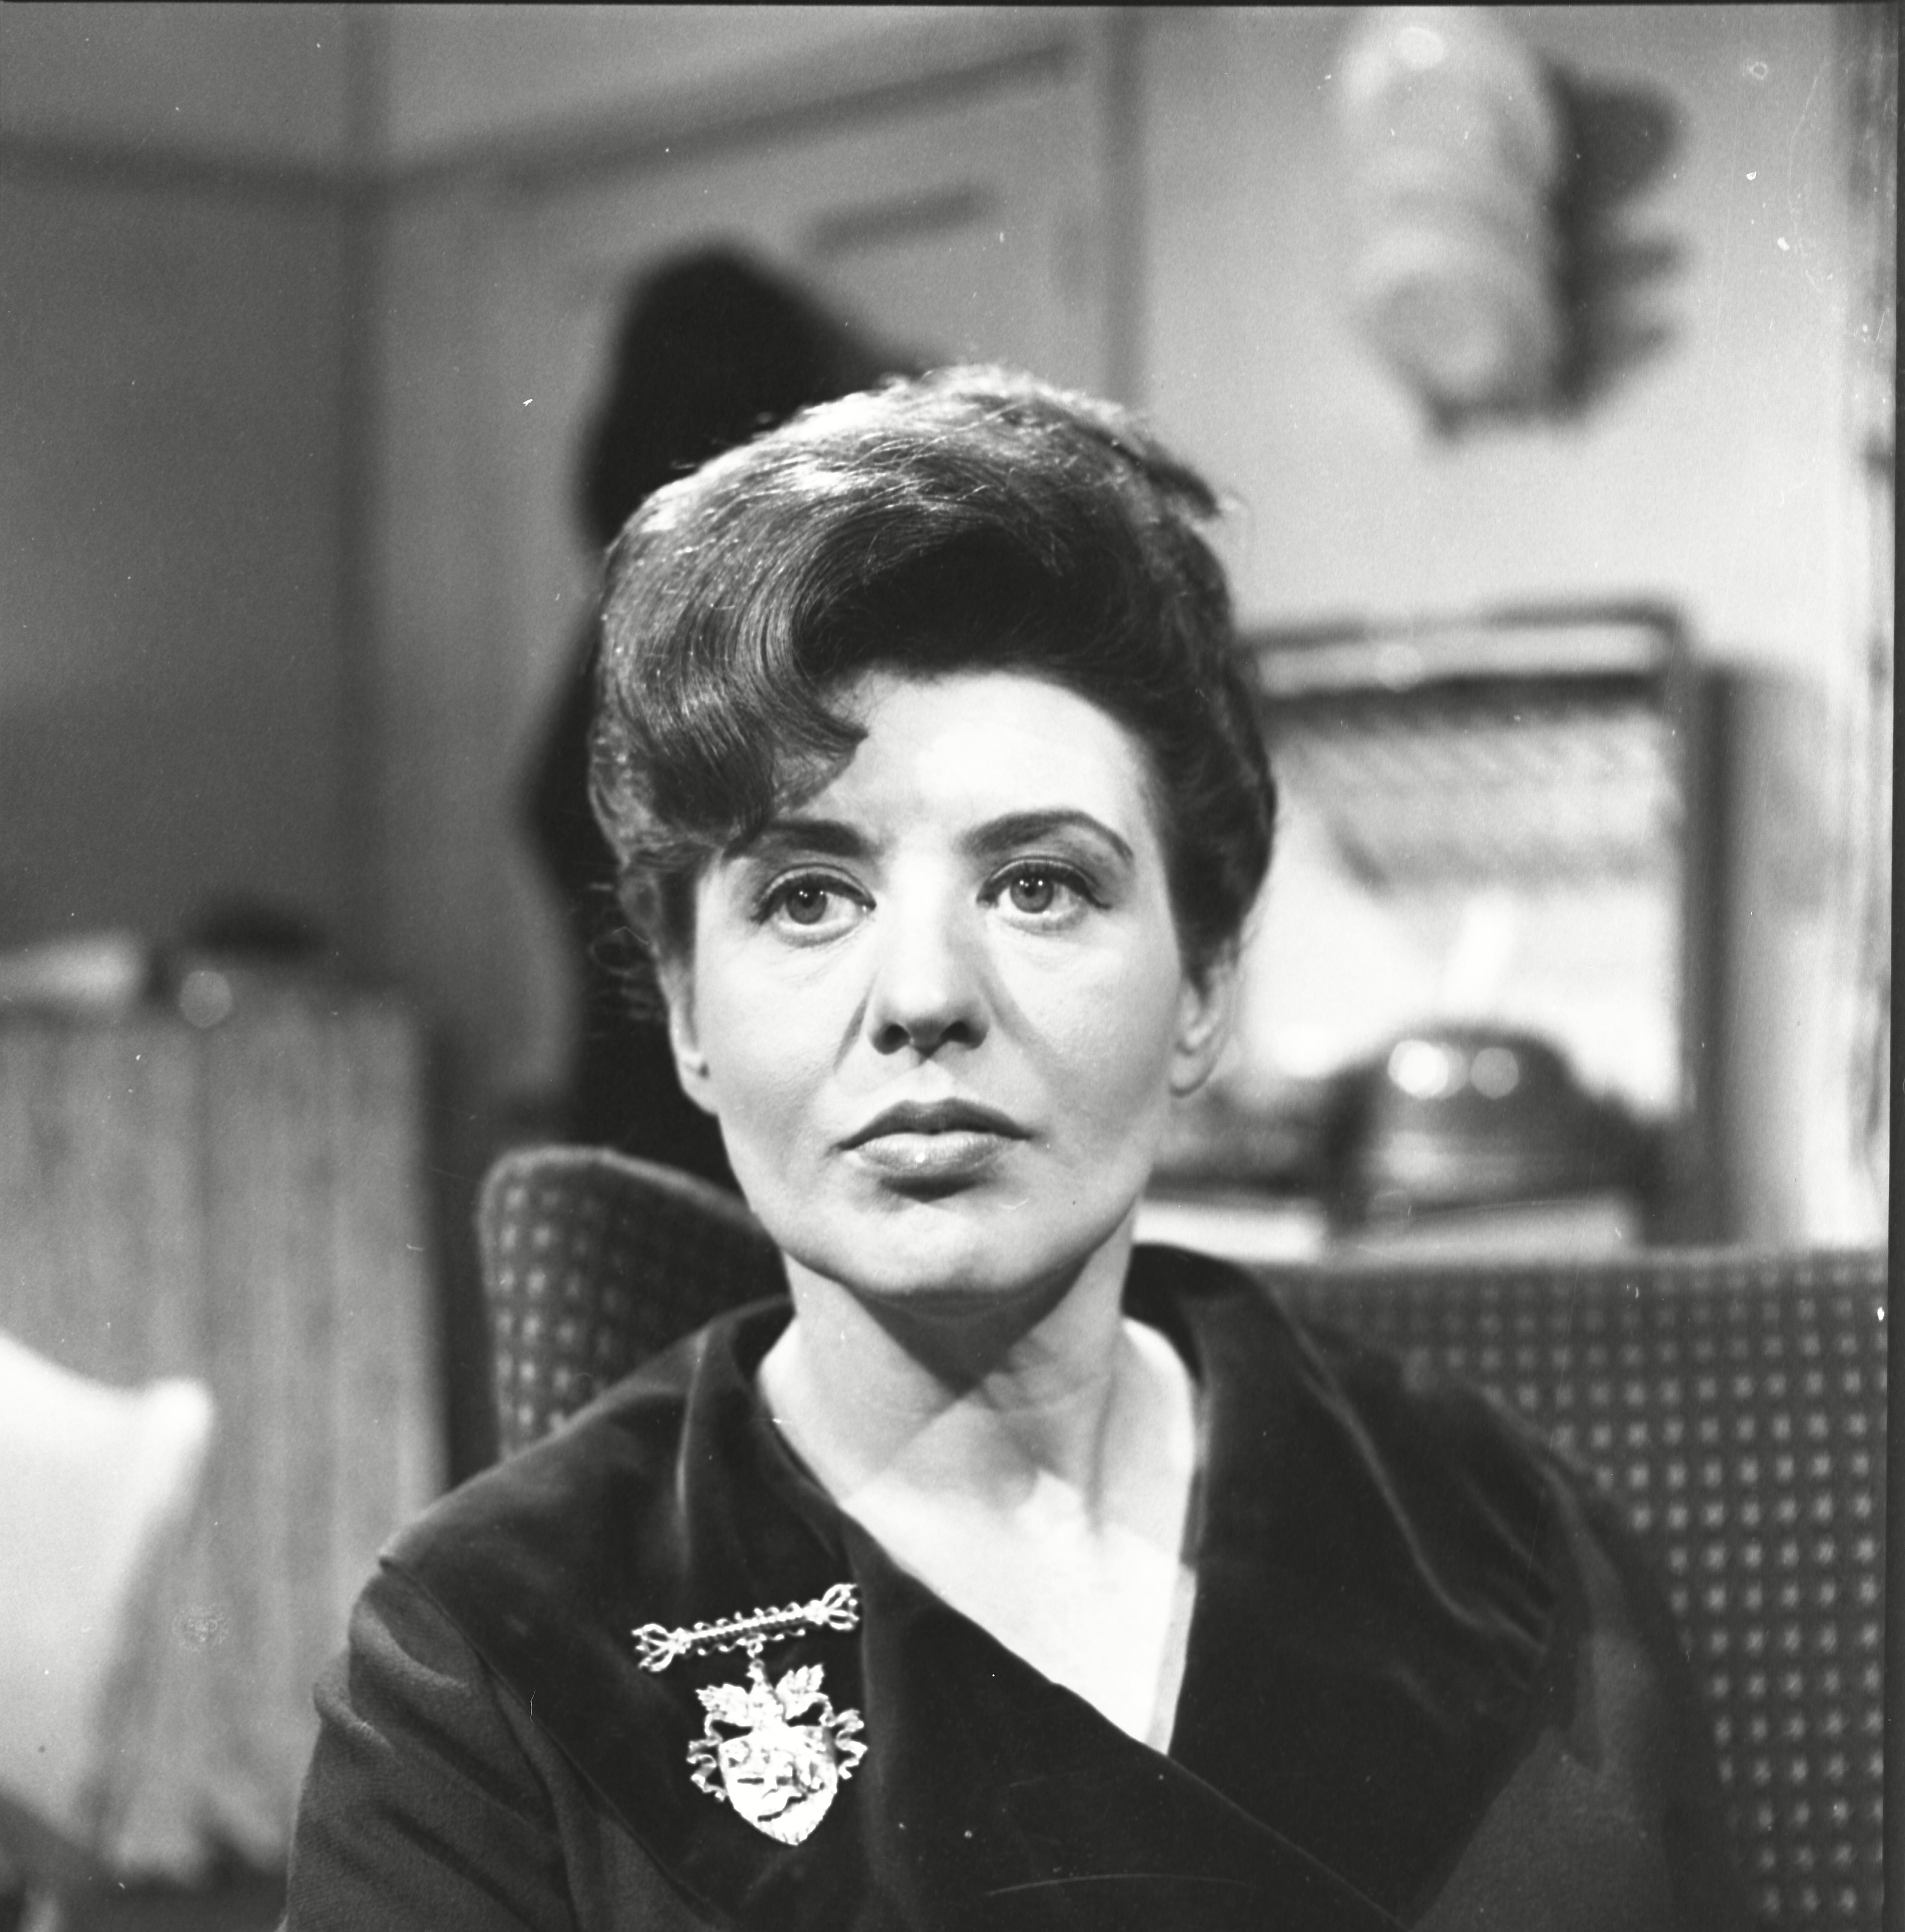 Editorial Use Only. No merchandising Mandatory Credit: Photo by ITV/REX/Shutterstock (9901130r) Pat Phoenix (as Elsie Tanner) 'Coronation Street' TV Show - 1964 Coronation Street is a long running Television soap opera set in the fictional North of England town of Weatherfield. Created by Tony Warren. First broadcast on December 9th, 1960. Produced by ITV Granada.